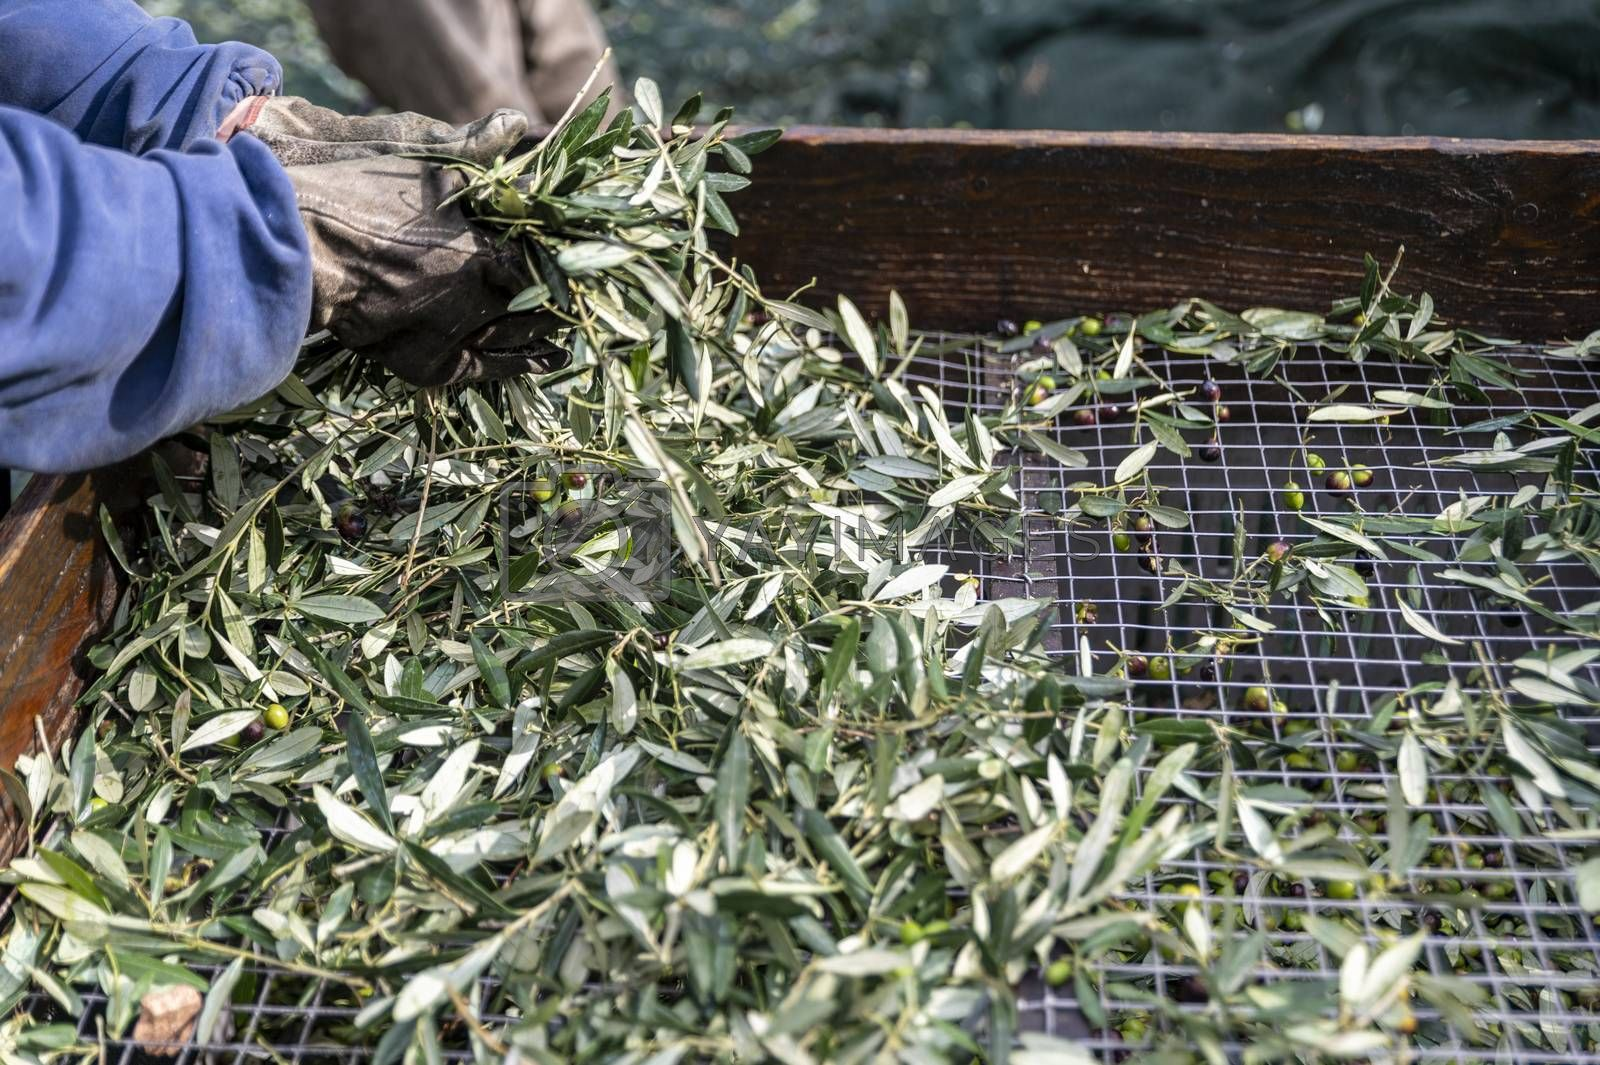 olive capatura from the leaves with passer during the harvest